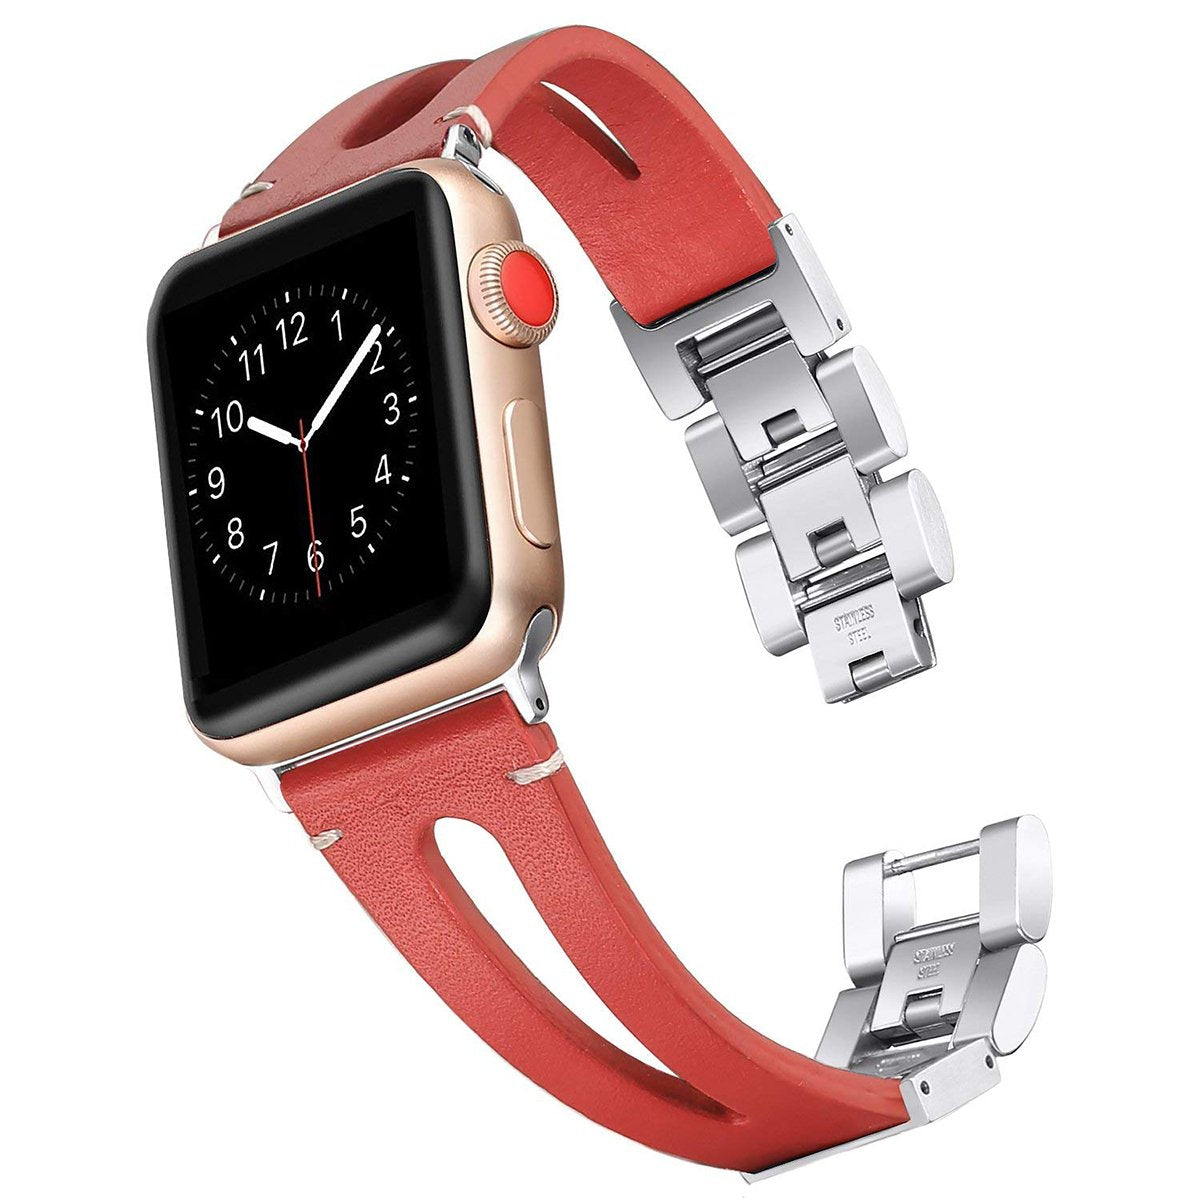 Genuine Calf Leather Apple Watch Bands 38mm/42mm/40m/44mm - iWatch Band Series 4 3 2 1 - Red / 38mm-40mm - Watchbands